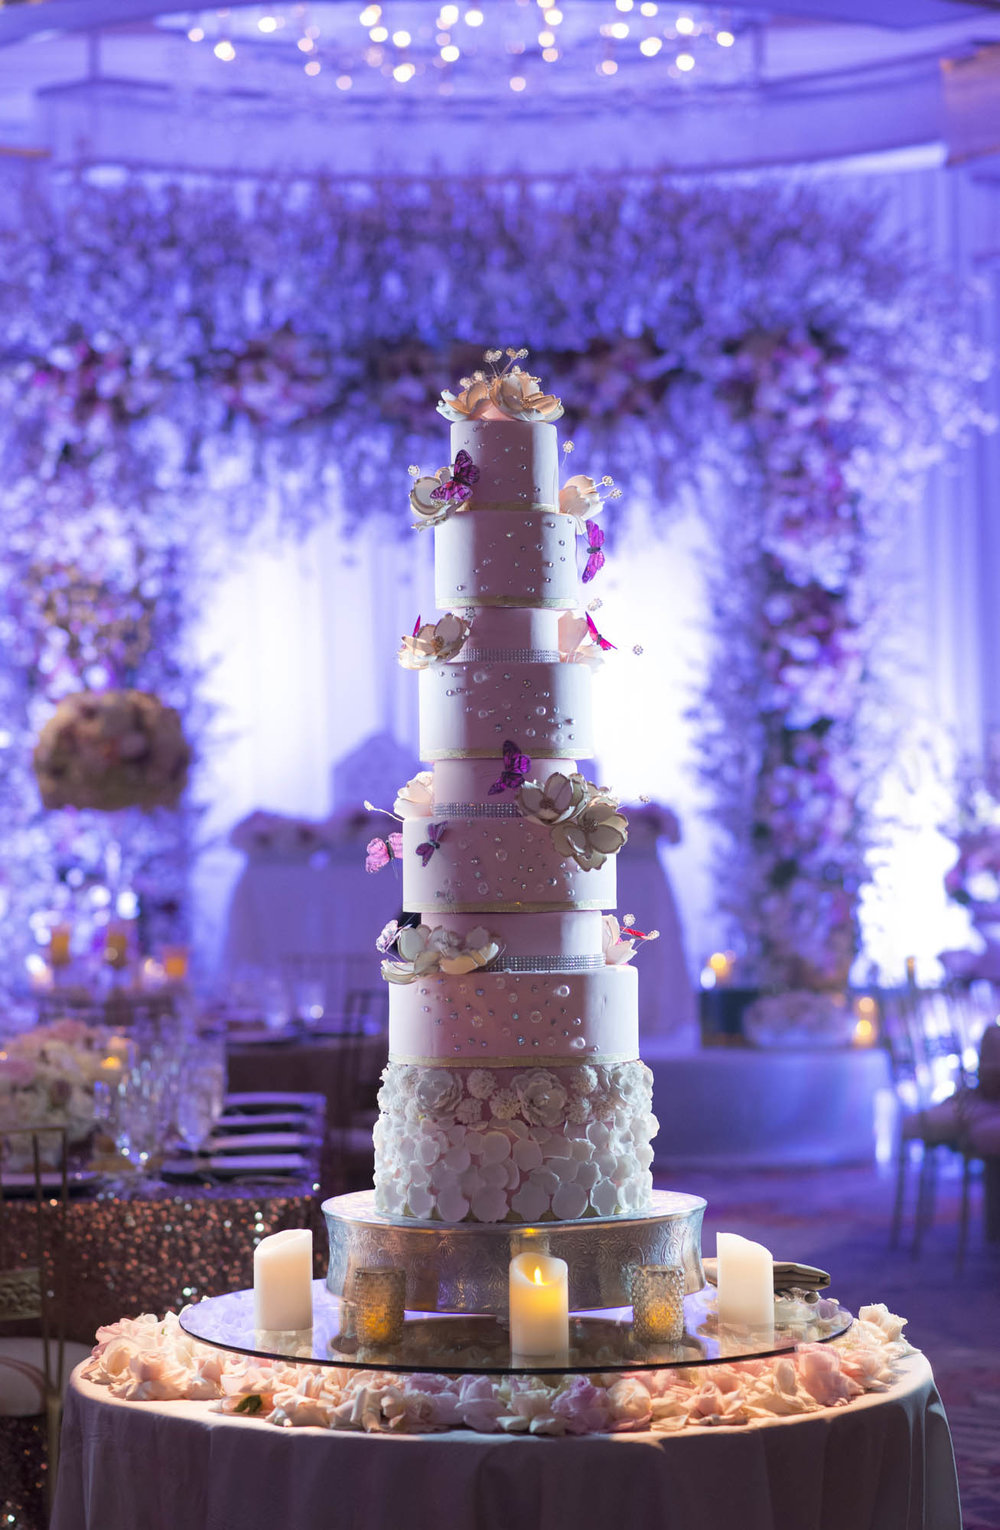 9 tiered wedding cake covered in petals and accented with silk butterflies. Las Vegas Wedding Planner Andrea Eppolito. Photo by AltF.